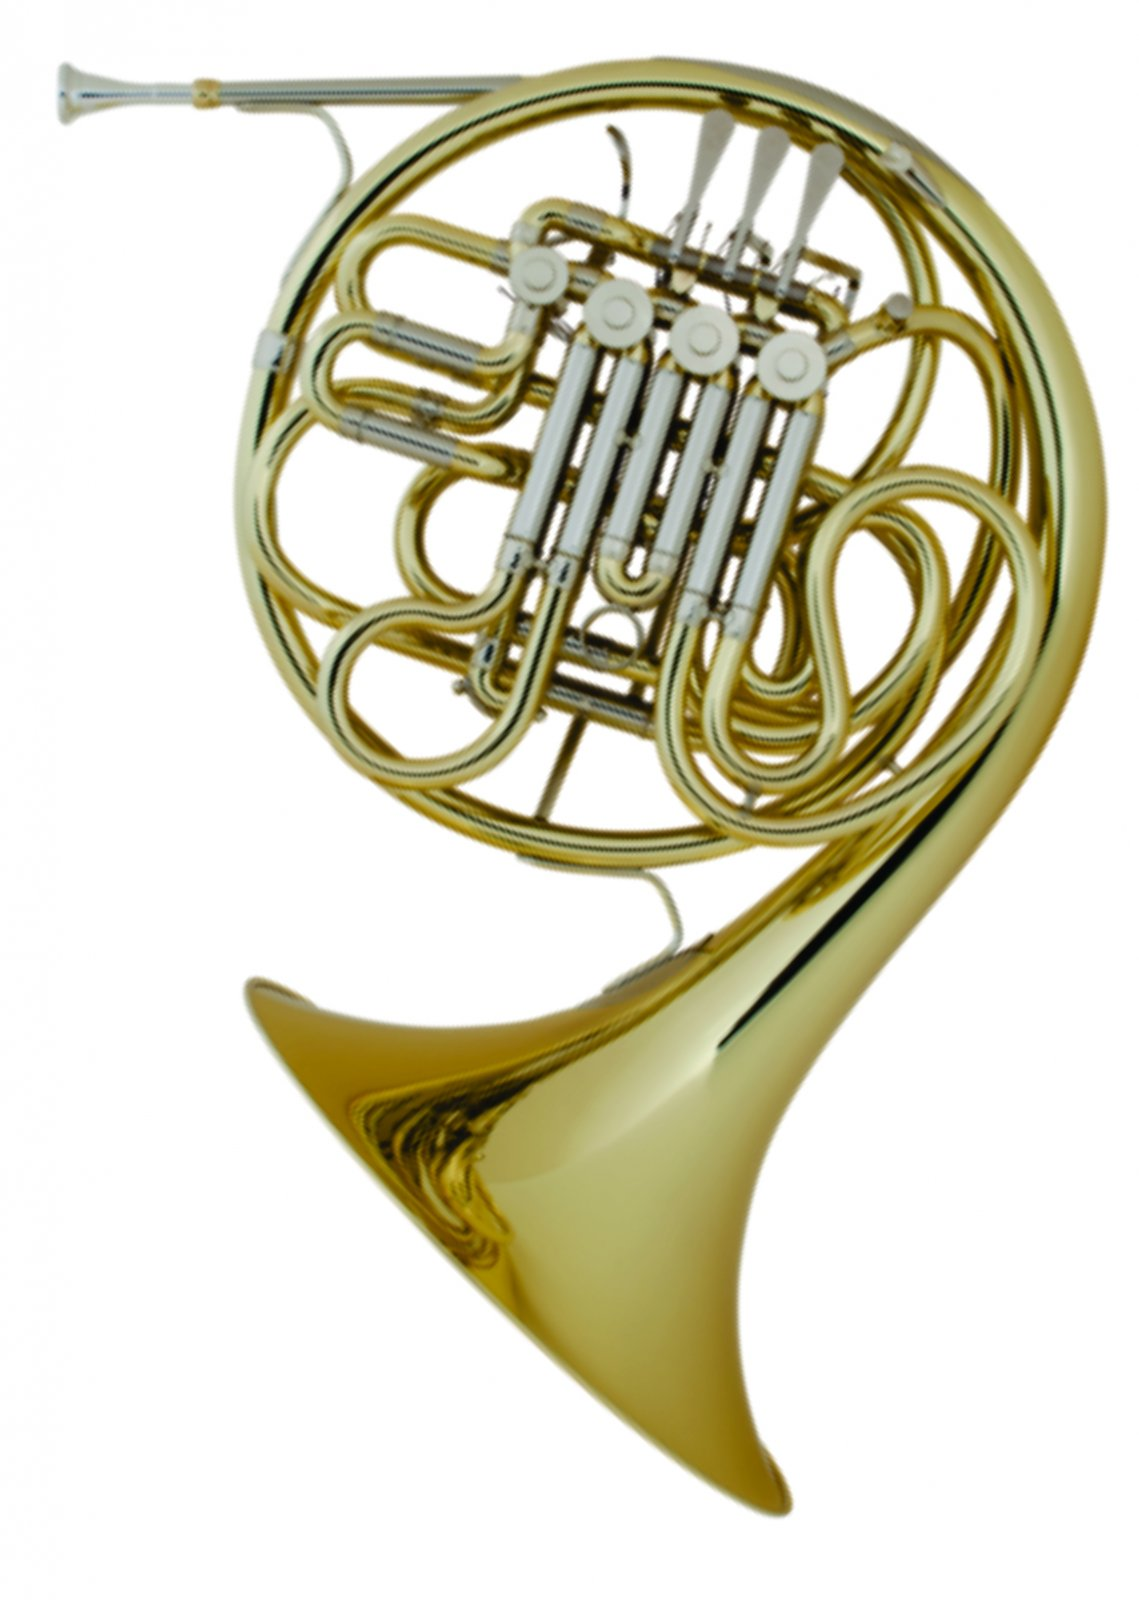 CONN 10DE Professional Double French Horn